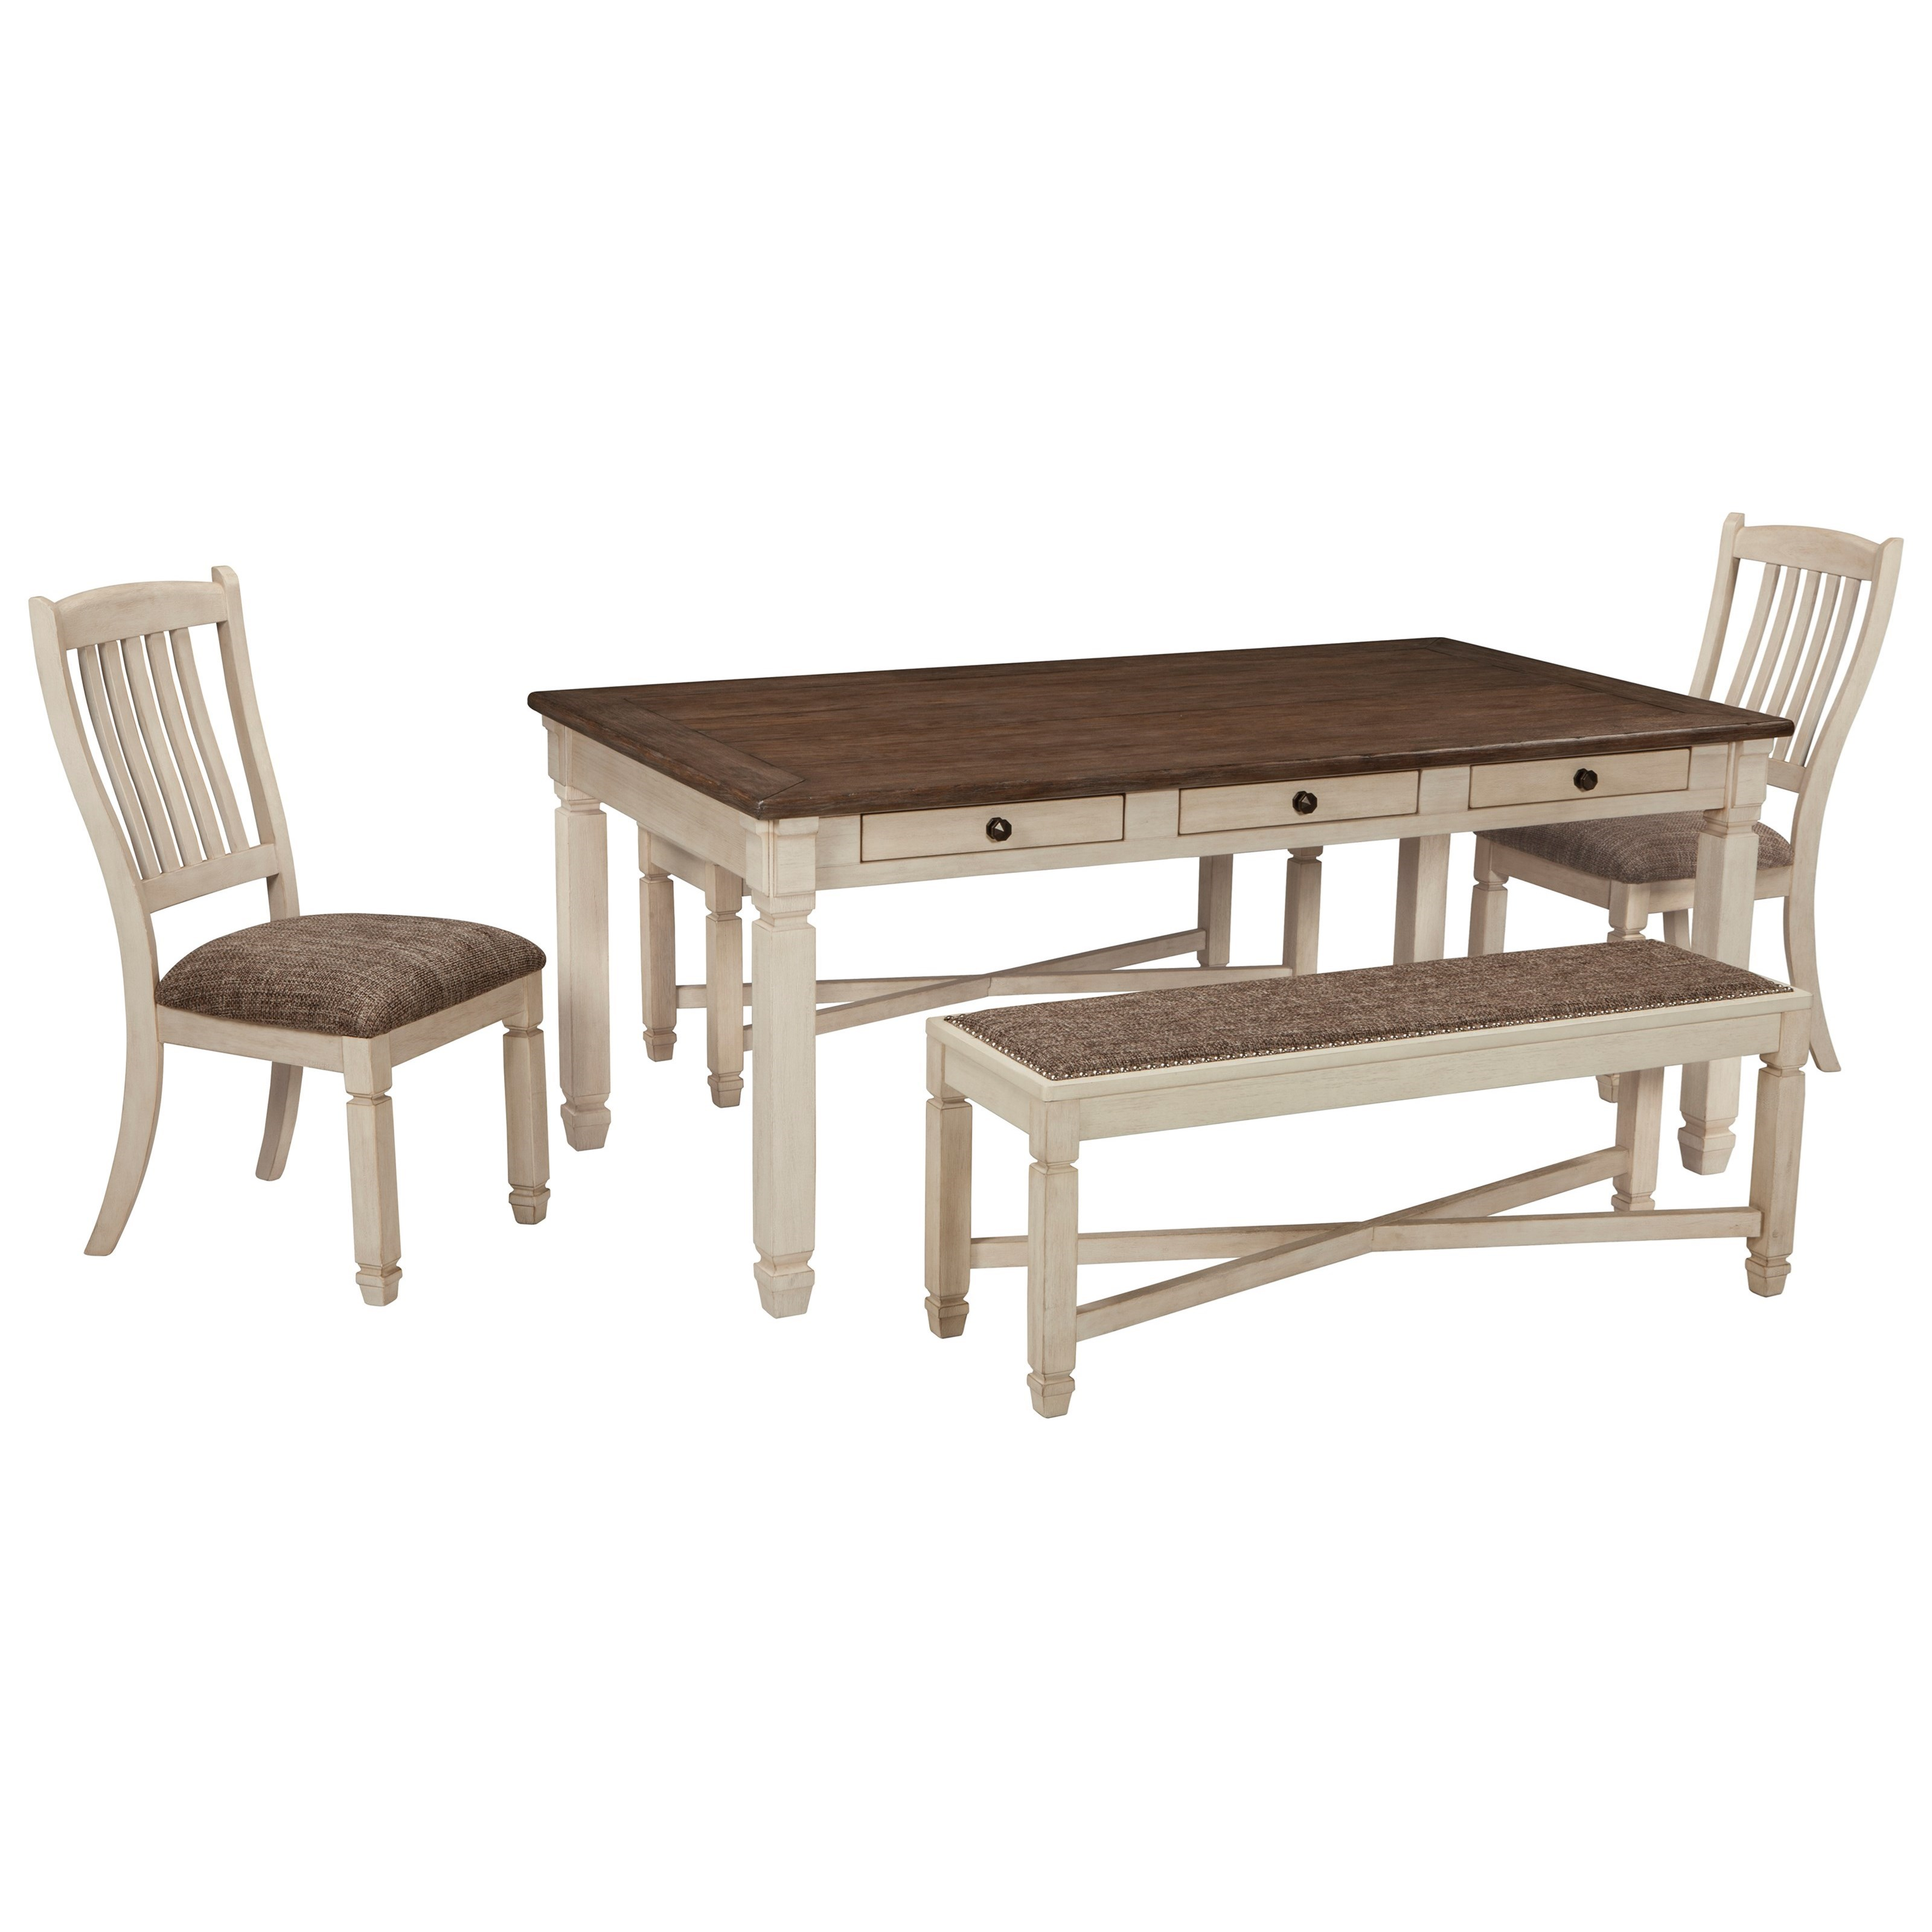 Rectangle Dining Table With Bench: Relaxed Vintage Rectangular Dining Room Table With 6